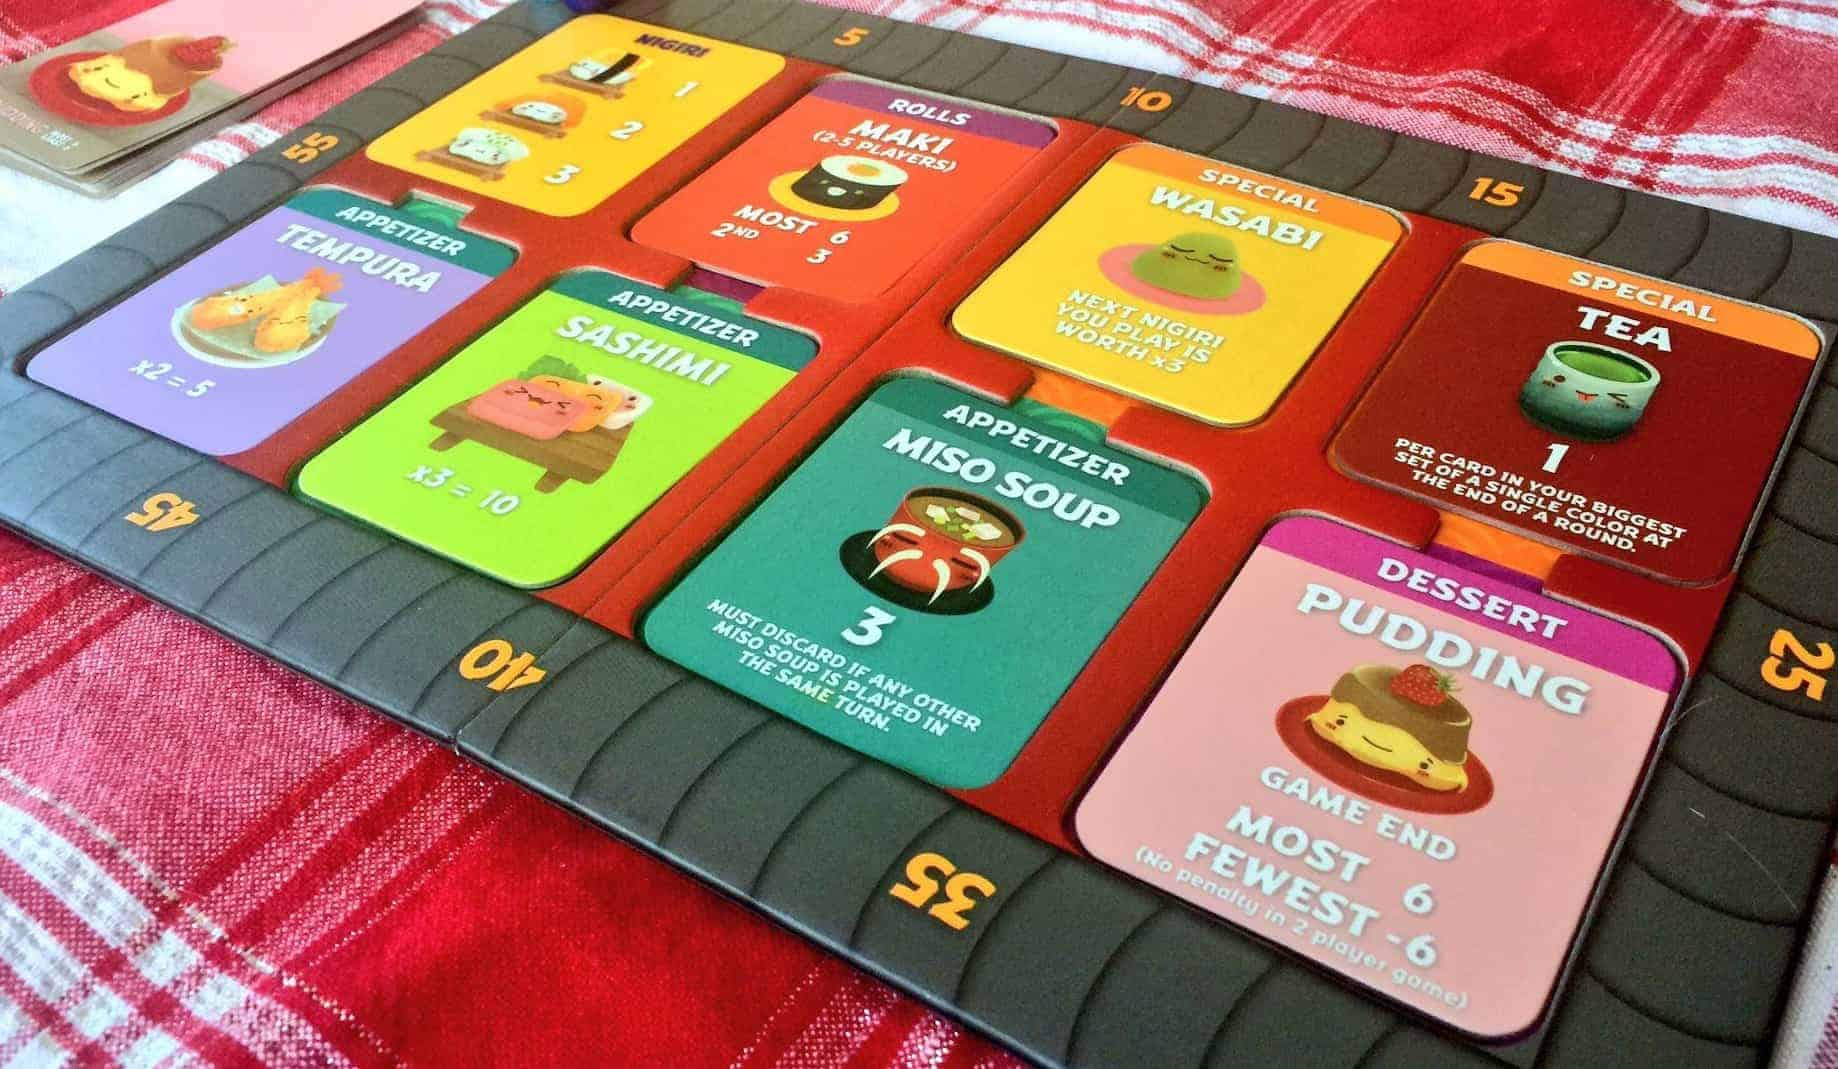 There is an endless amount of good family board games available, but cherry picking the top ones could be tricky. Sushi Go Party is an easy choice.